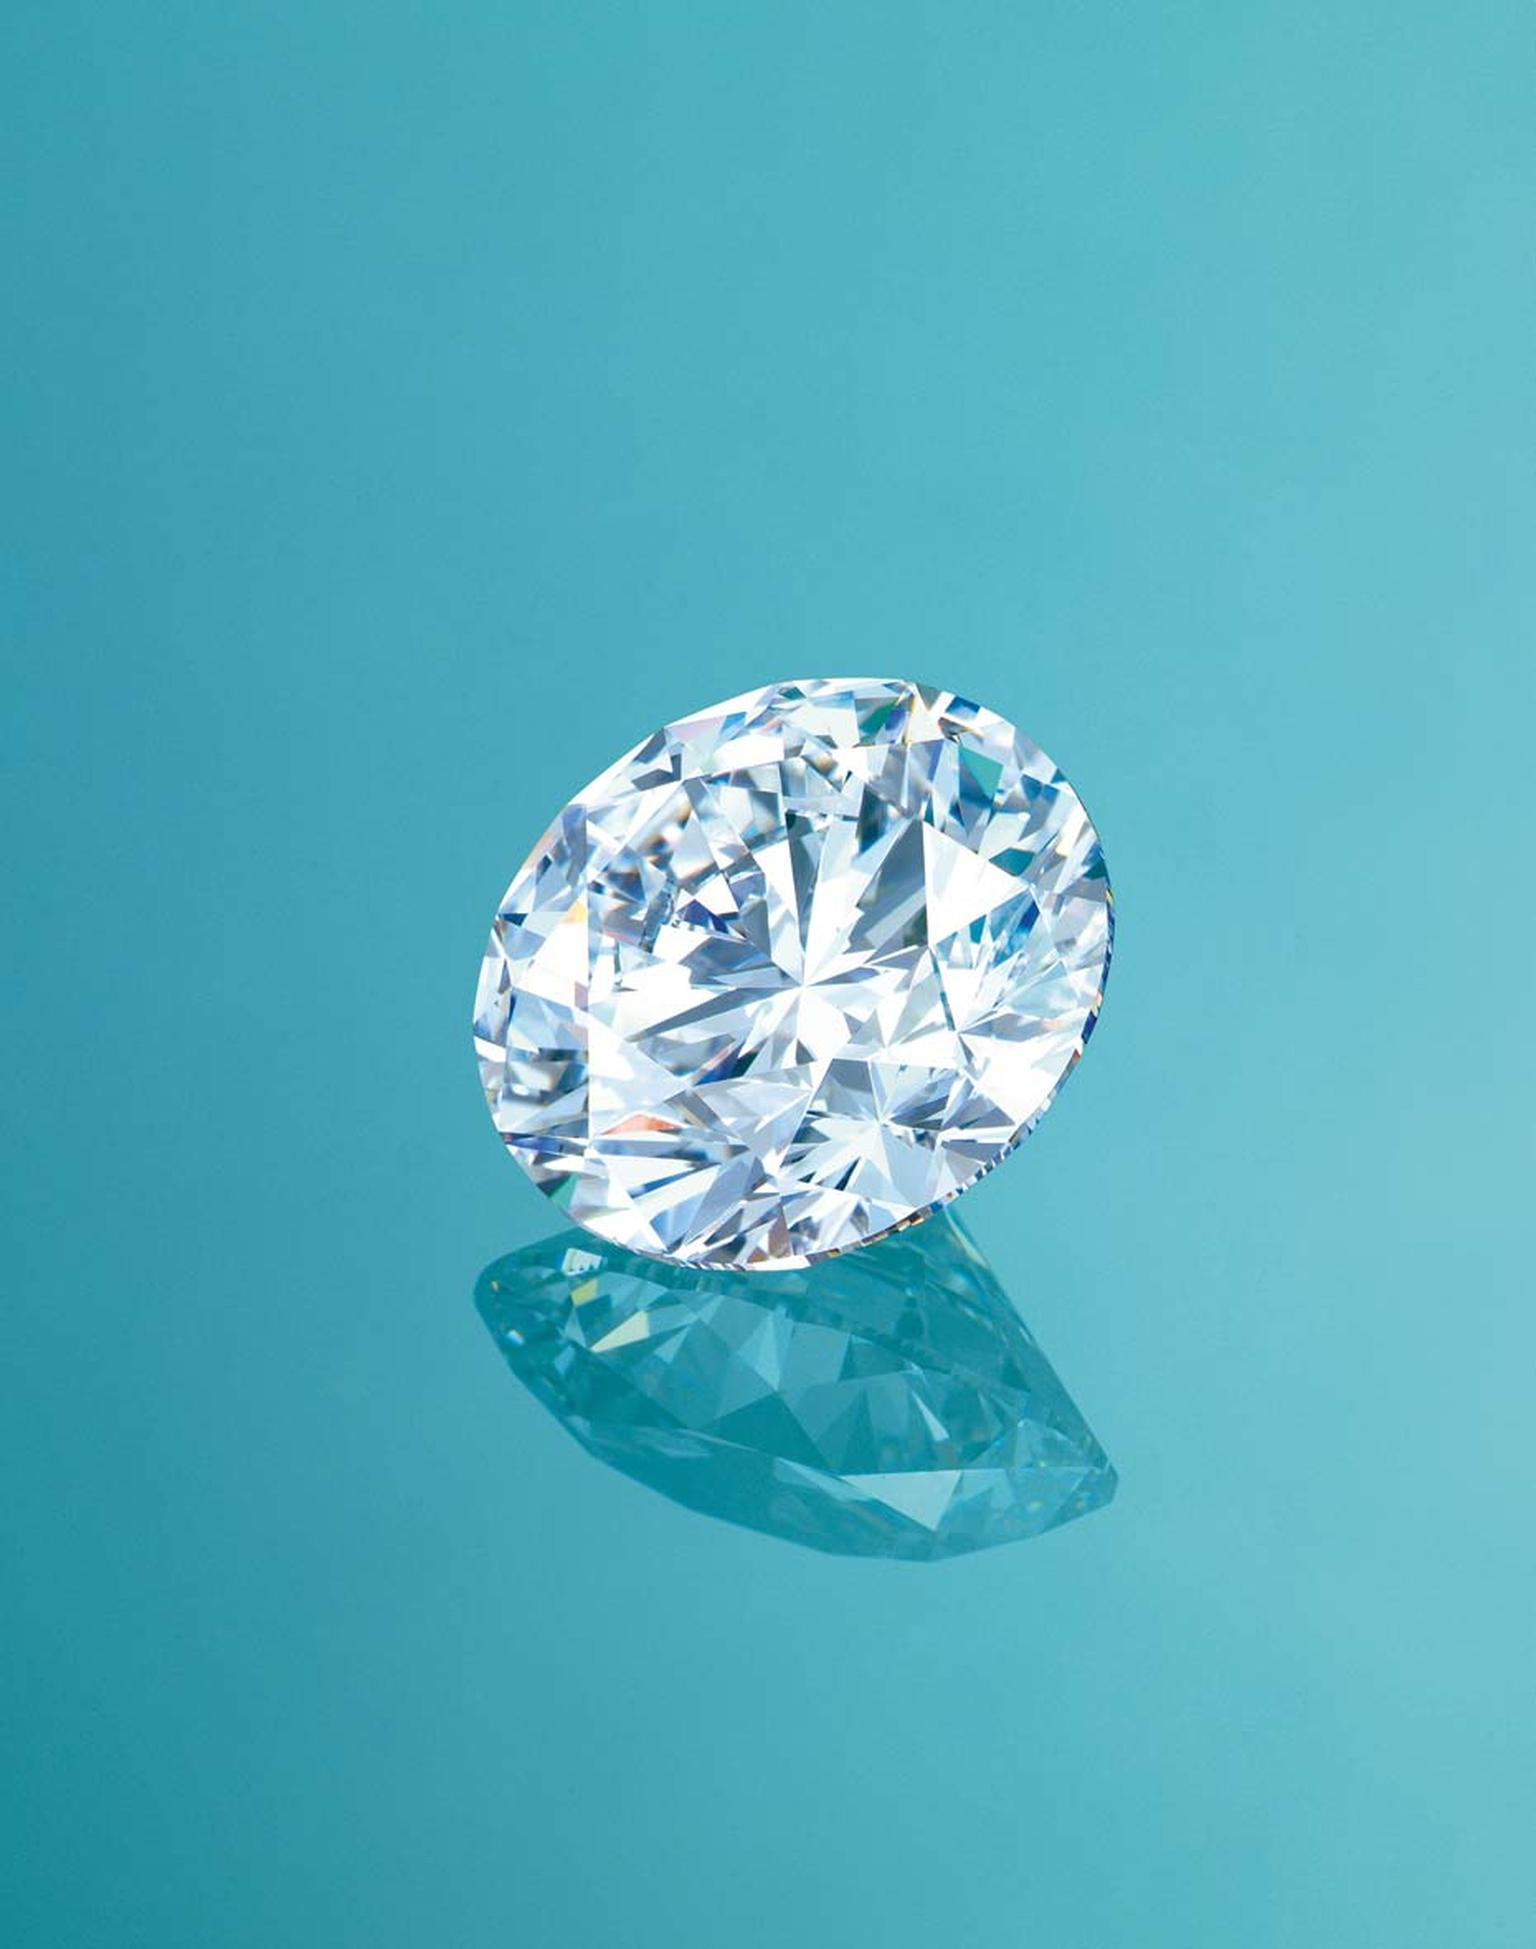 Another top lot at Christie's Hong Kong auction on 27 May is this 26.08ct unmounted D colour flawless clarity Type IIa brilliant-cut diamond (estimate: US$4-6.5 million)